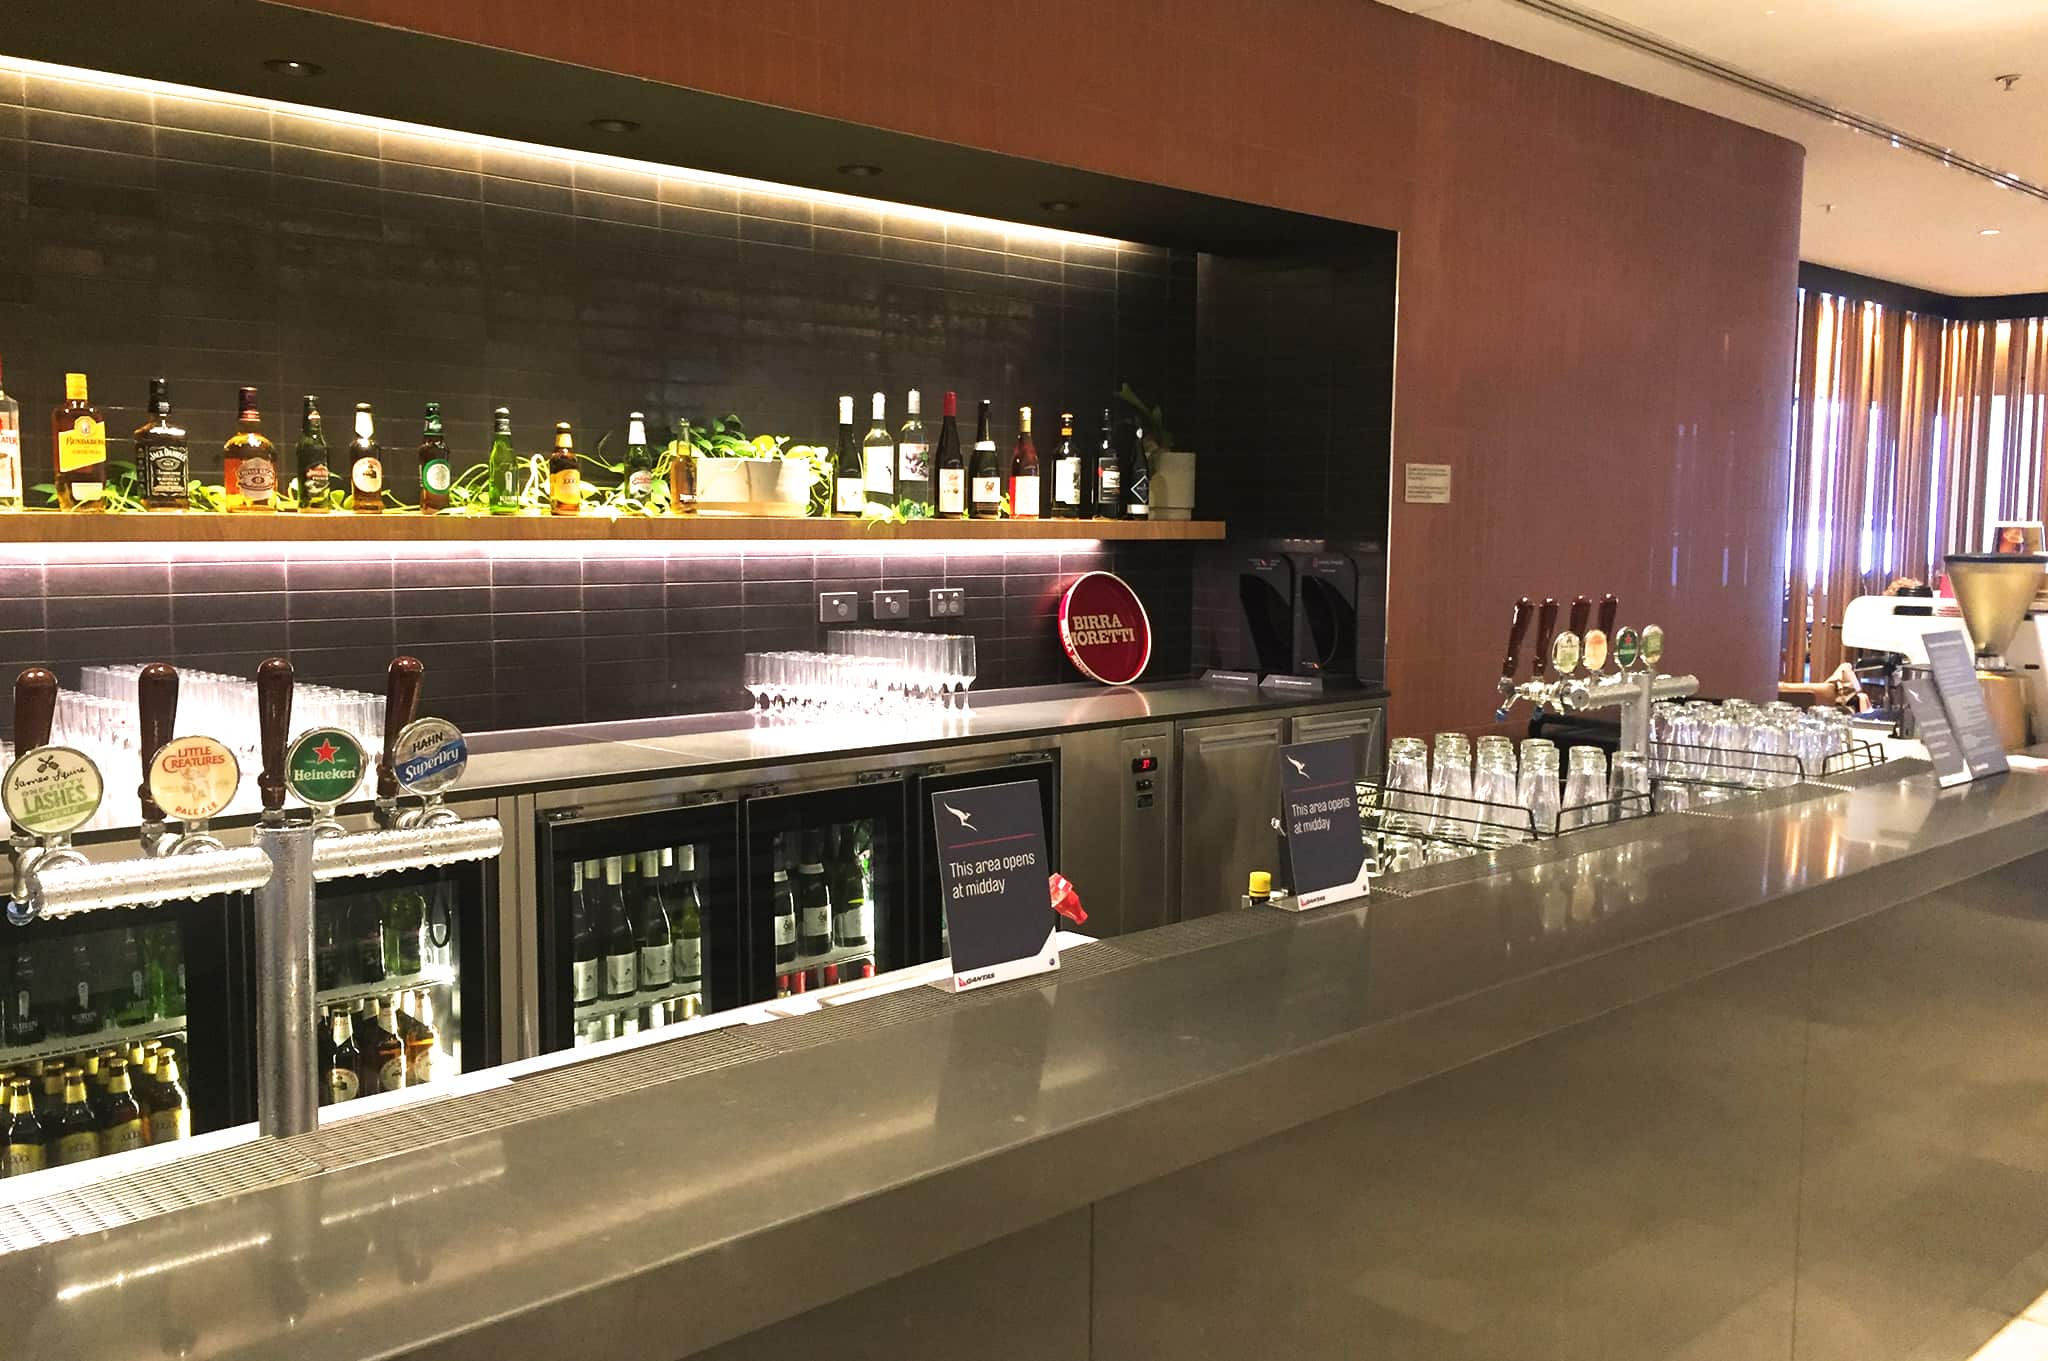 Perth Qantas Business Class Lounge Bar